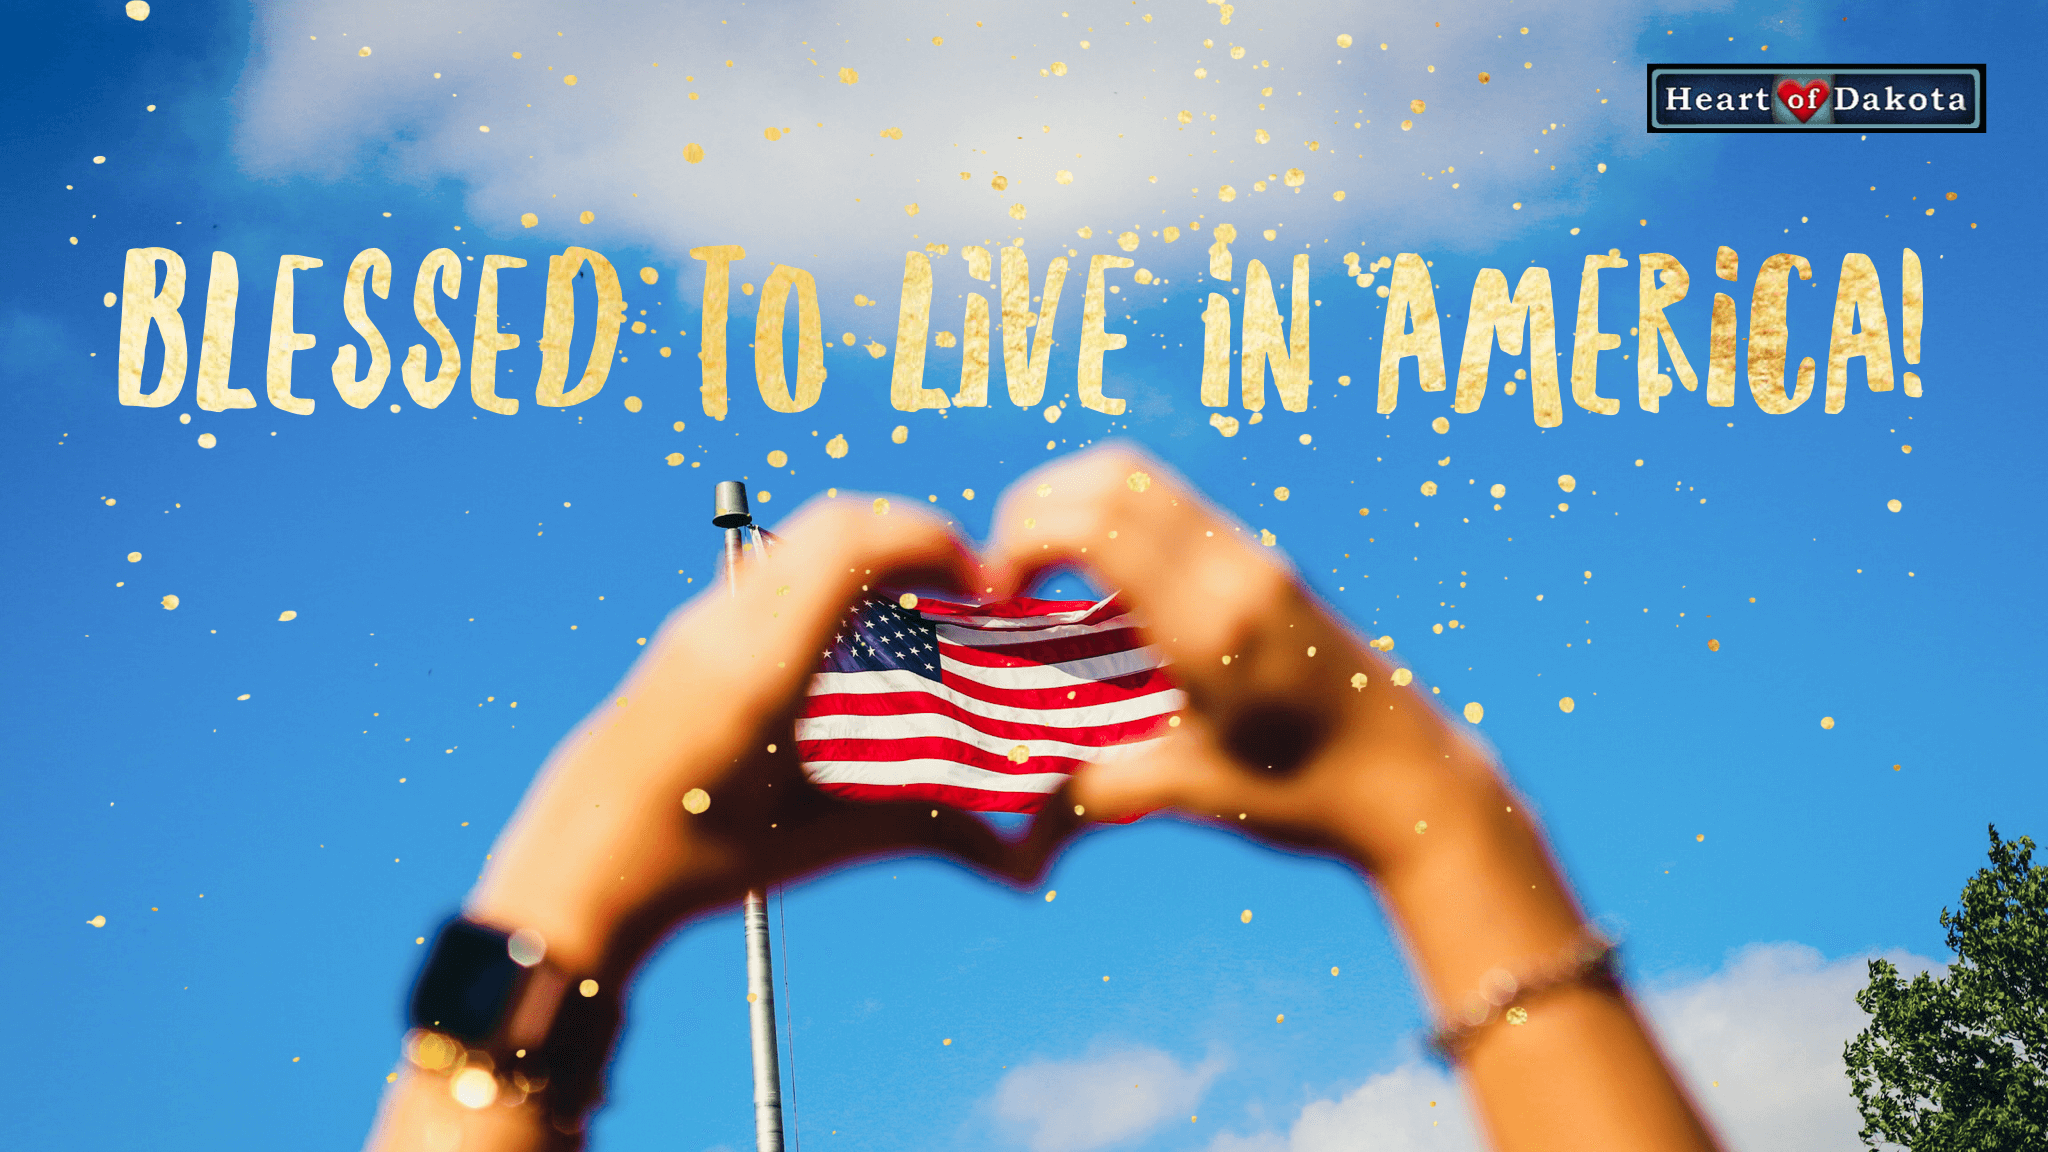 We are blessed to live in America!